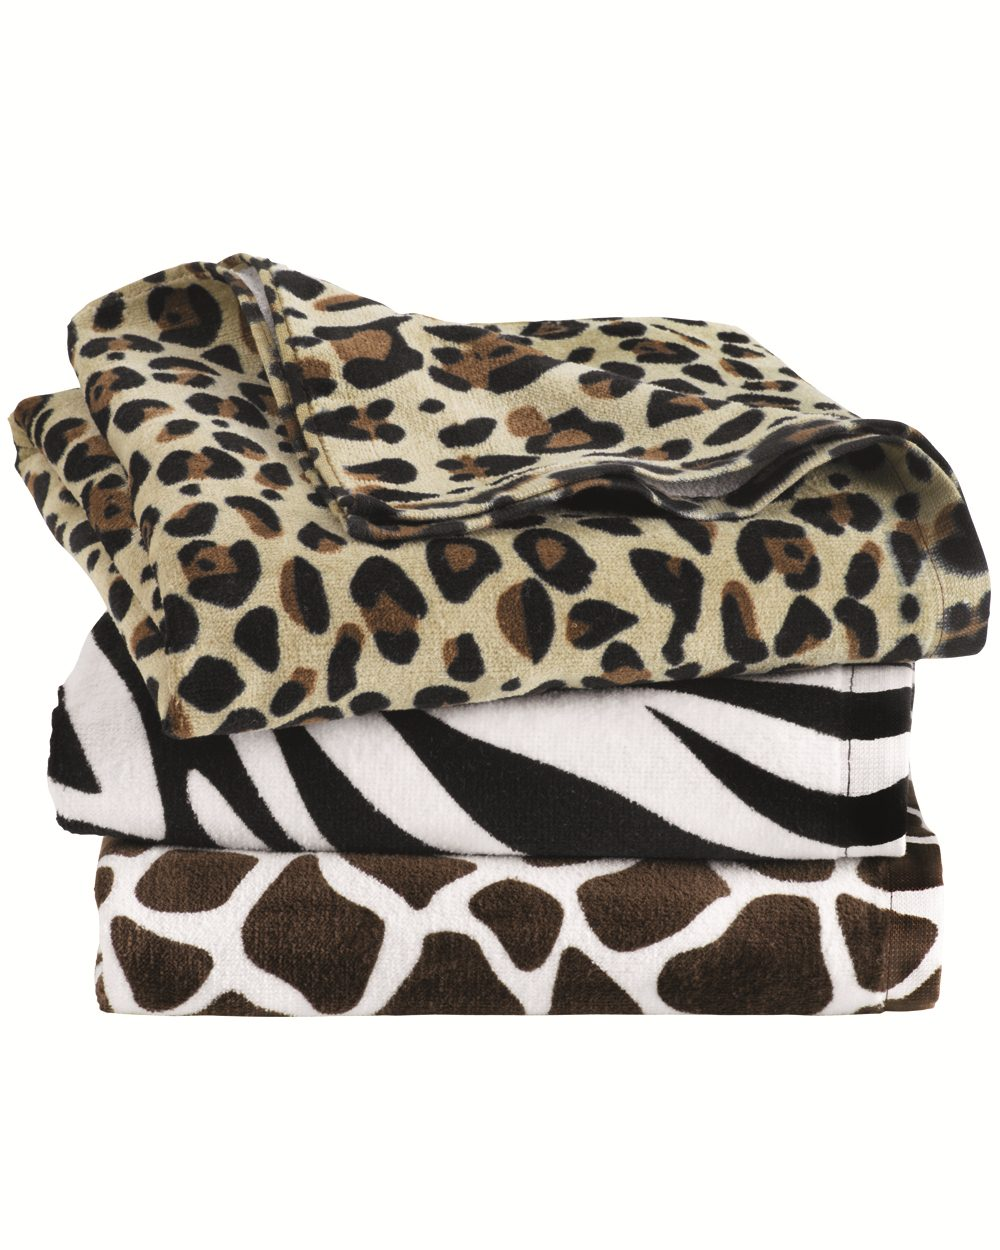 Carmel Towel Company C3060P - Animal Print Velour Beach Towel